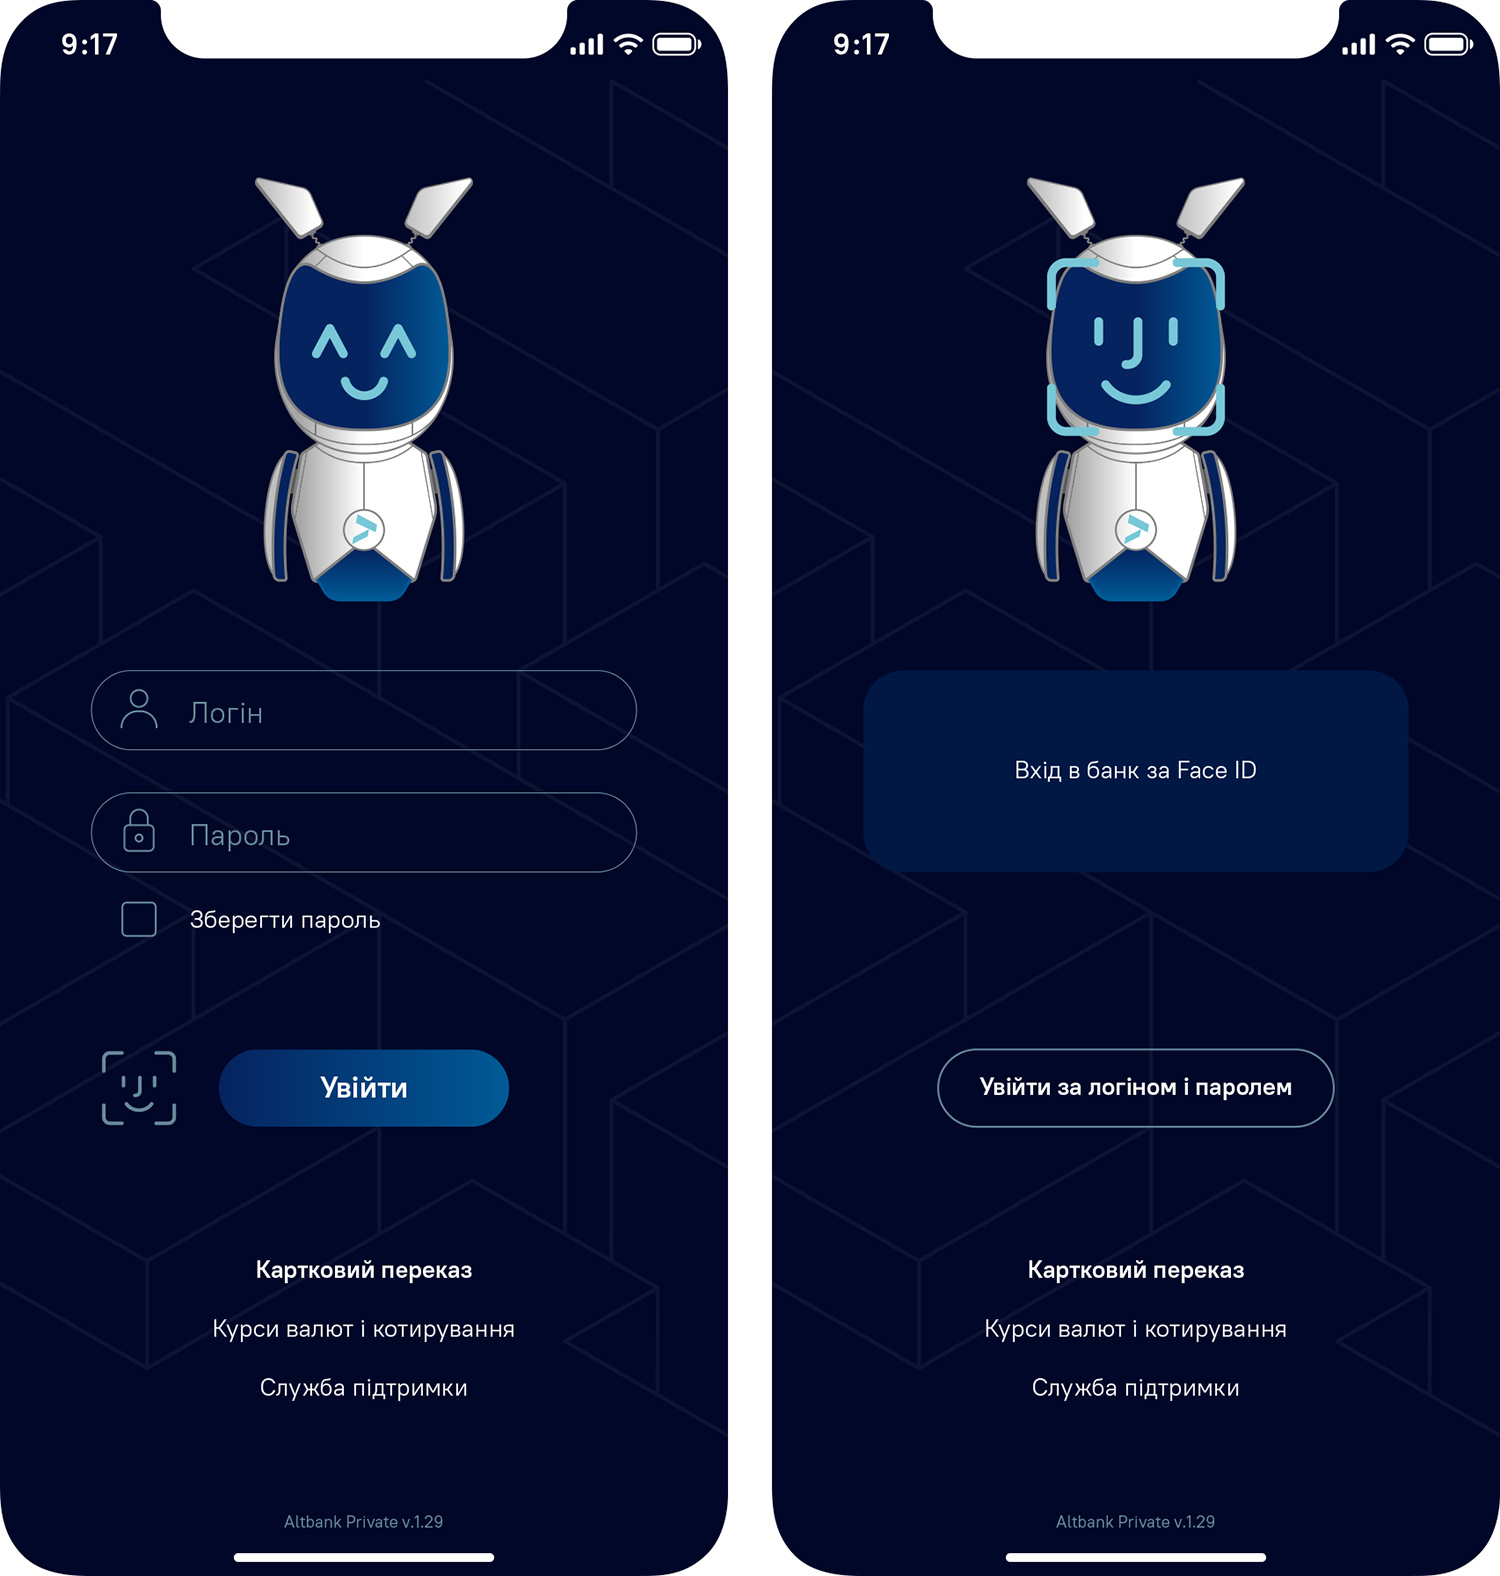 Login to the Altbank mobile application. The dark theme. Robot Alt is the bank's corporate character, mascot.